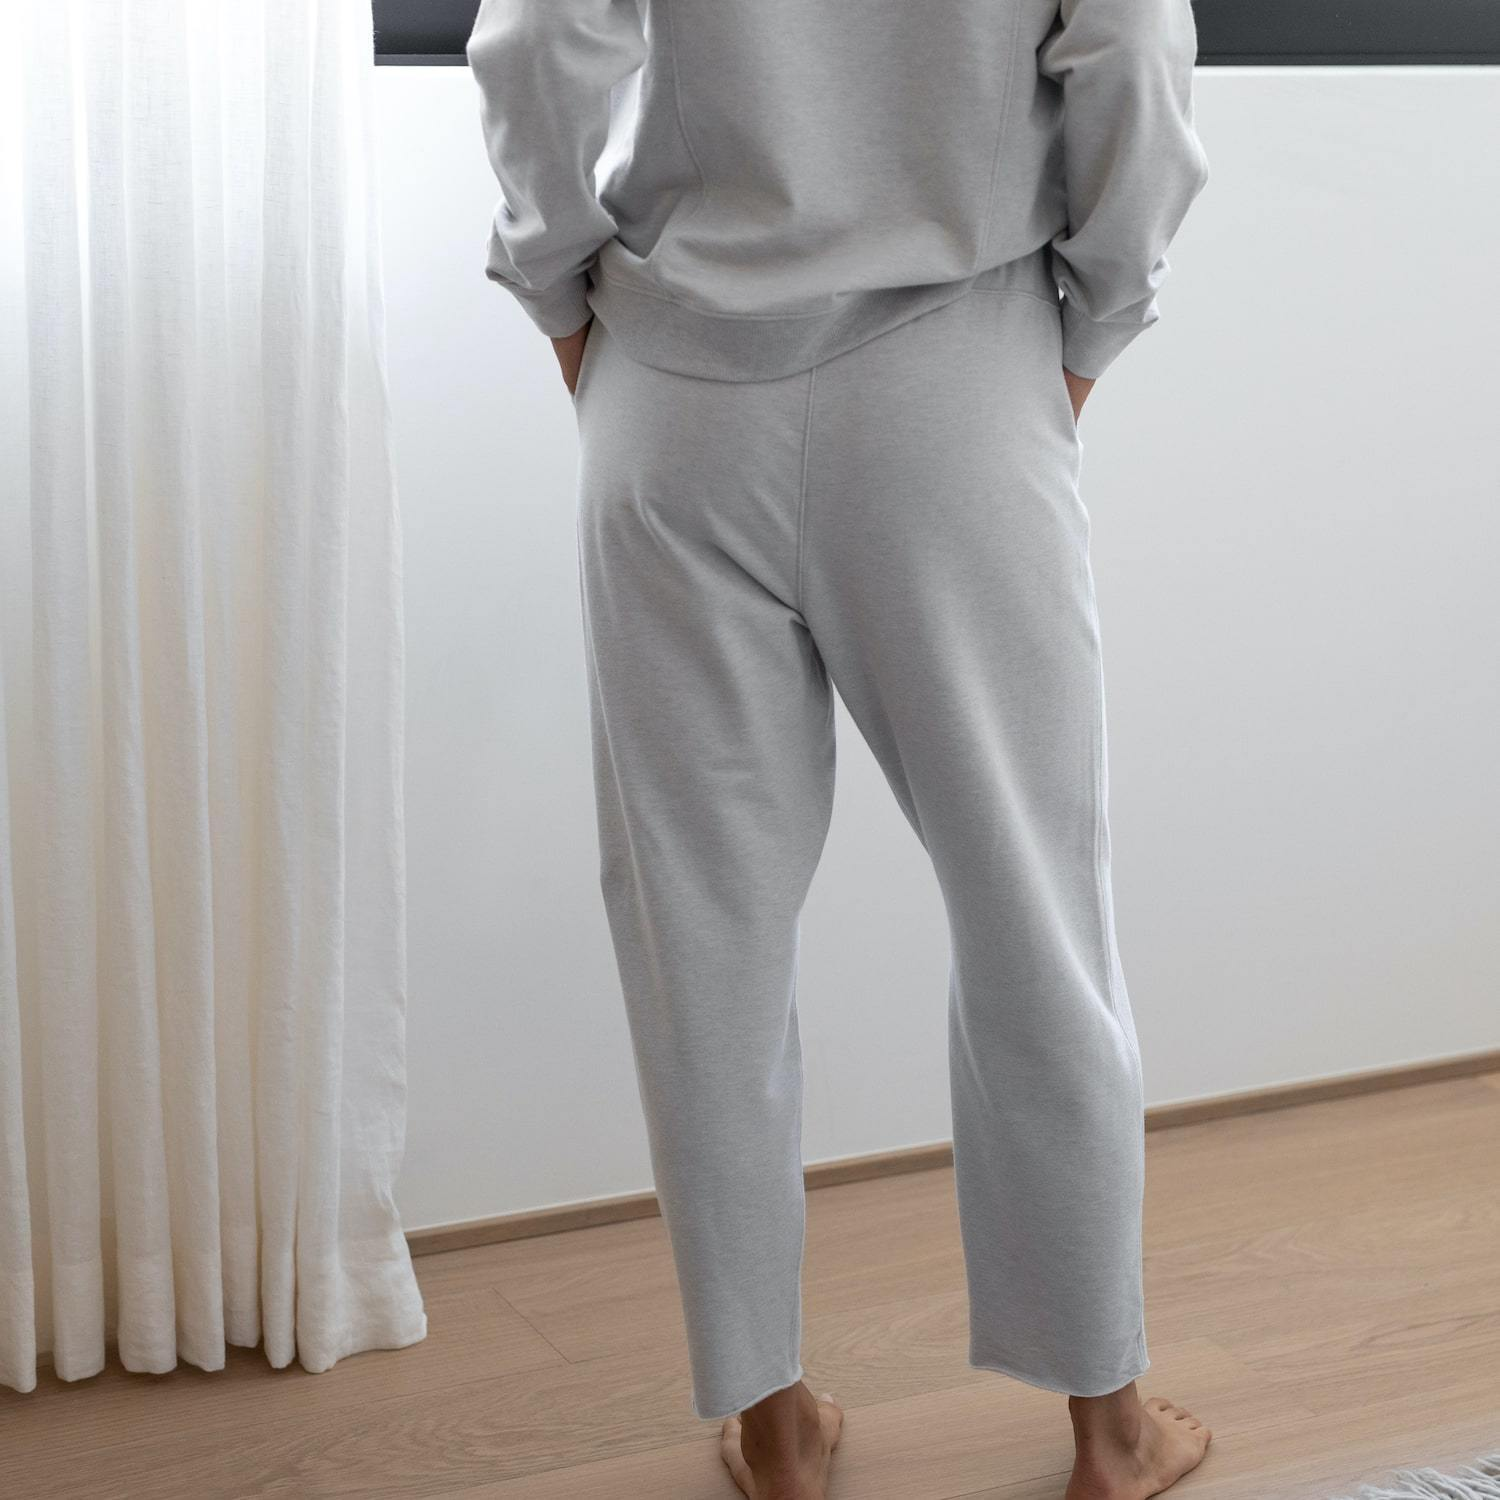 Lunya Sleepwear Cozy Pima Alpaca Fleece Relaxed Jogger - #Cloud